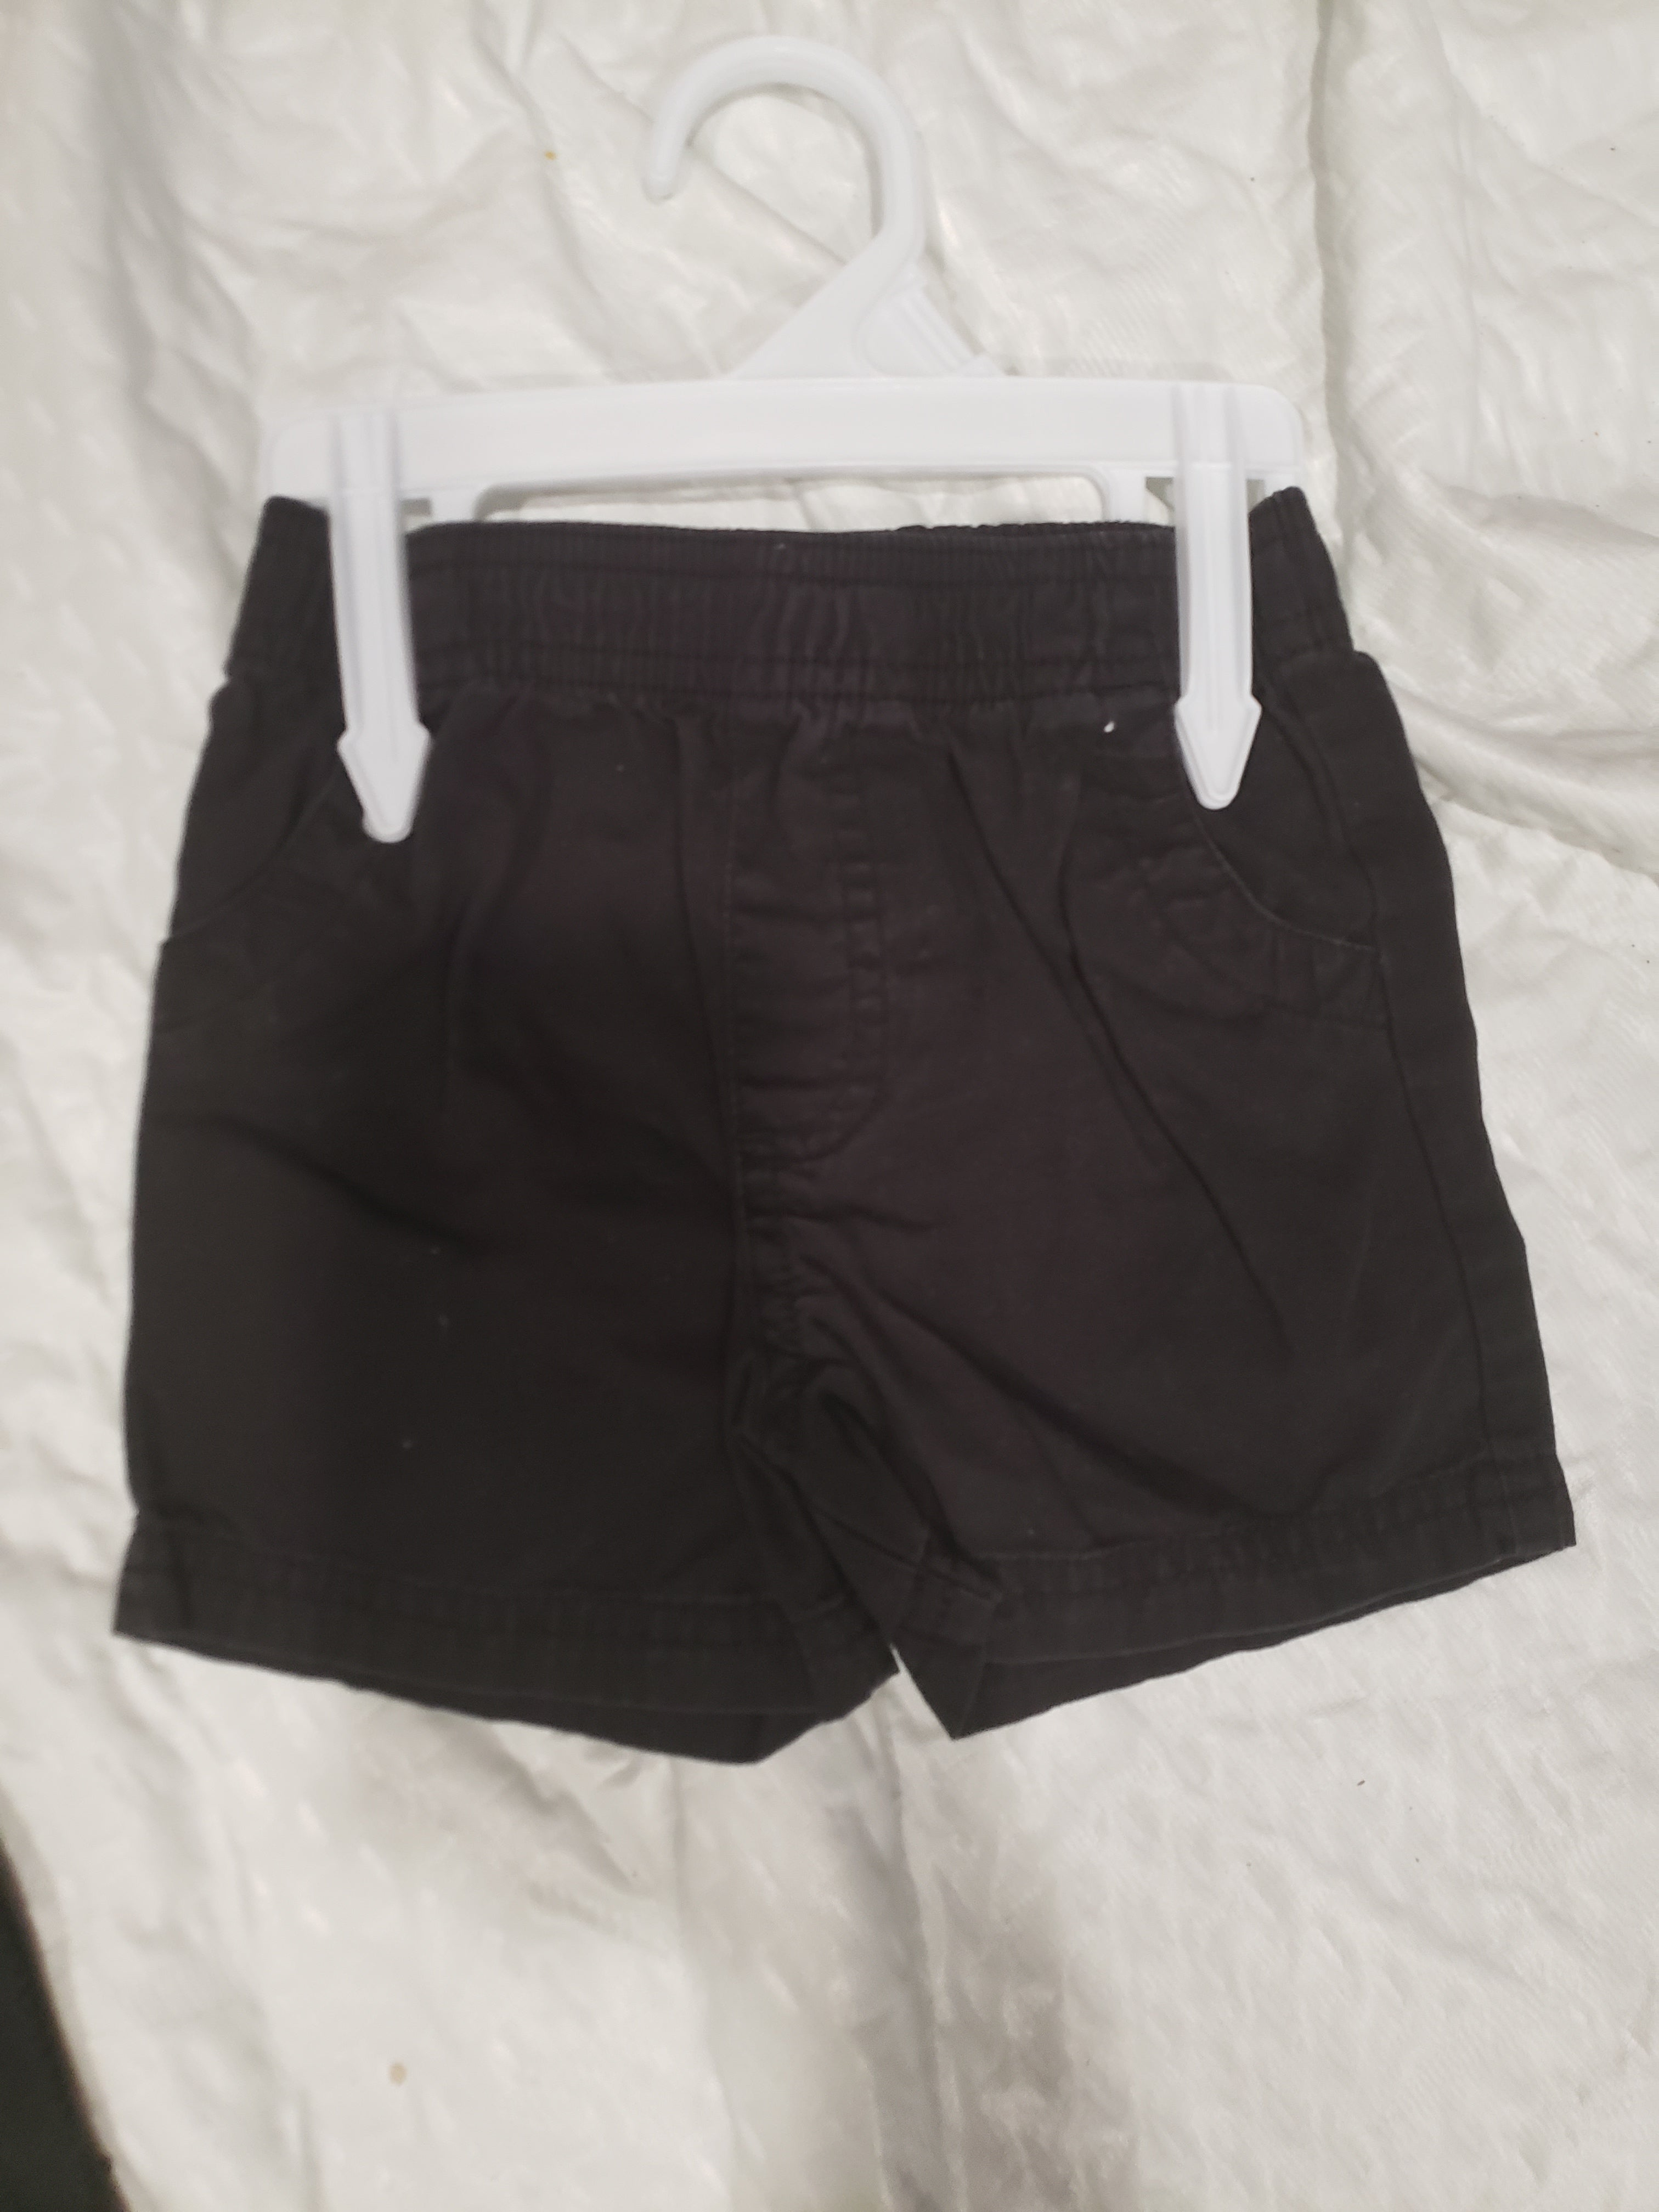 Girls 12 month black shorts